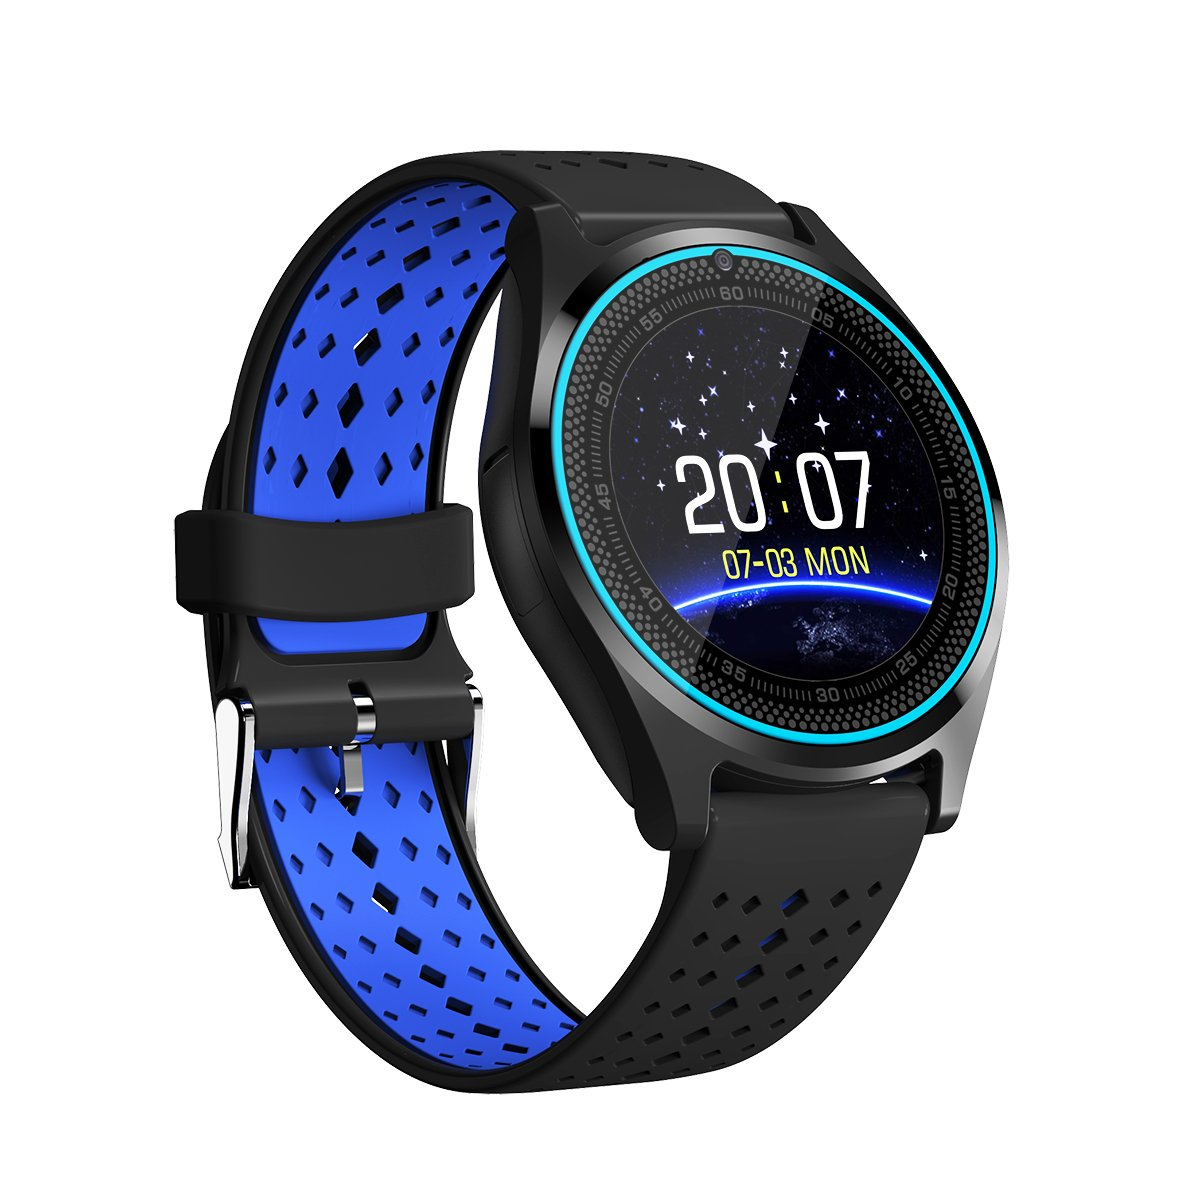 Kooman Smart Watch - Bluetooth Smartwatch Touch Screen Wrist Watch Sports Fitness Tracker with Camera SIM SD Card Slot Pedometer Compatible iPhone iOS ...